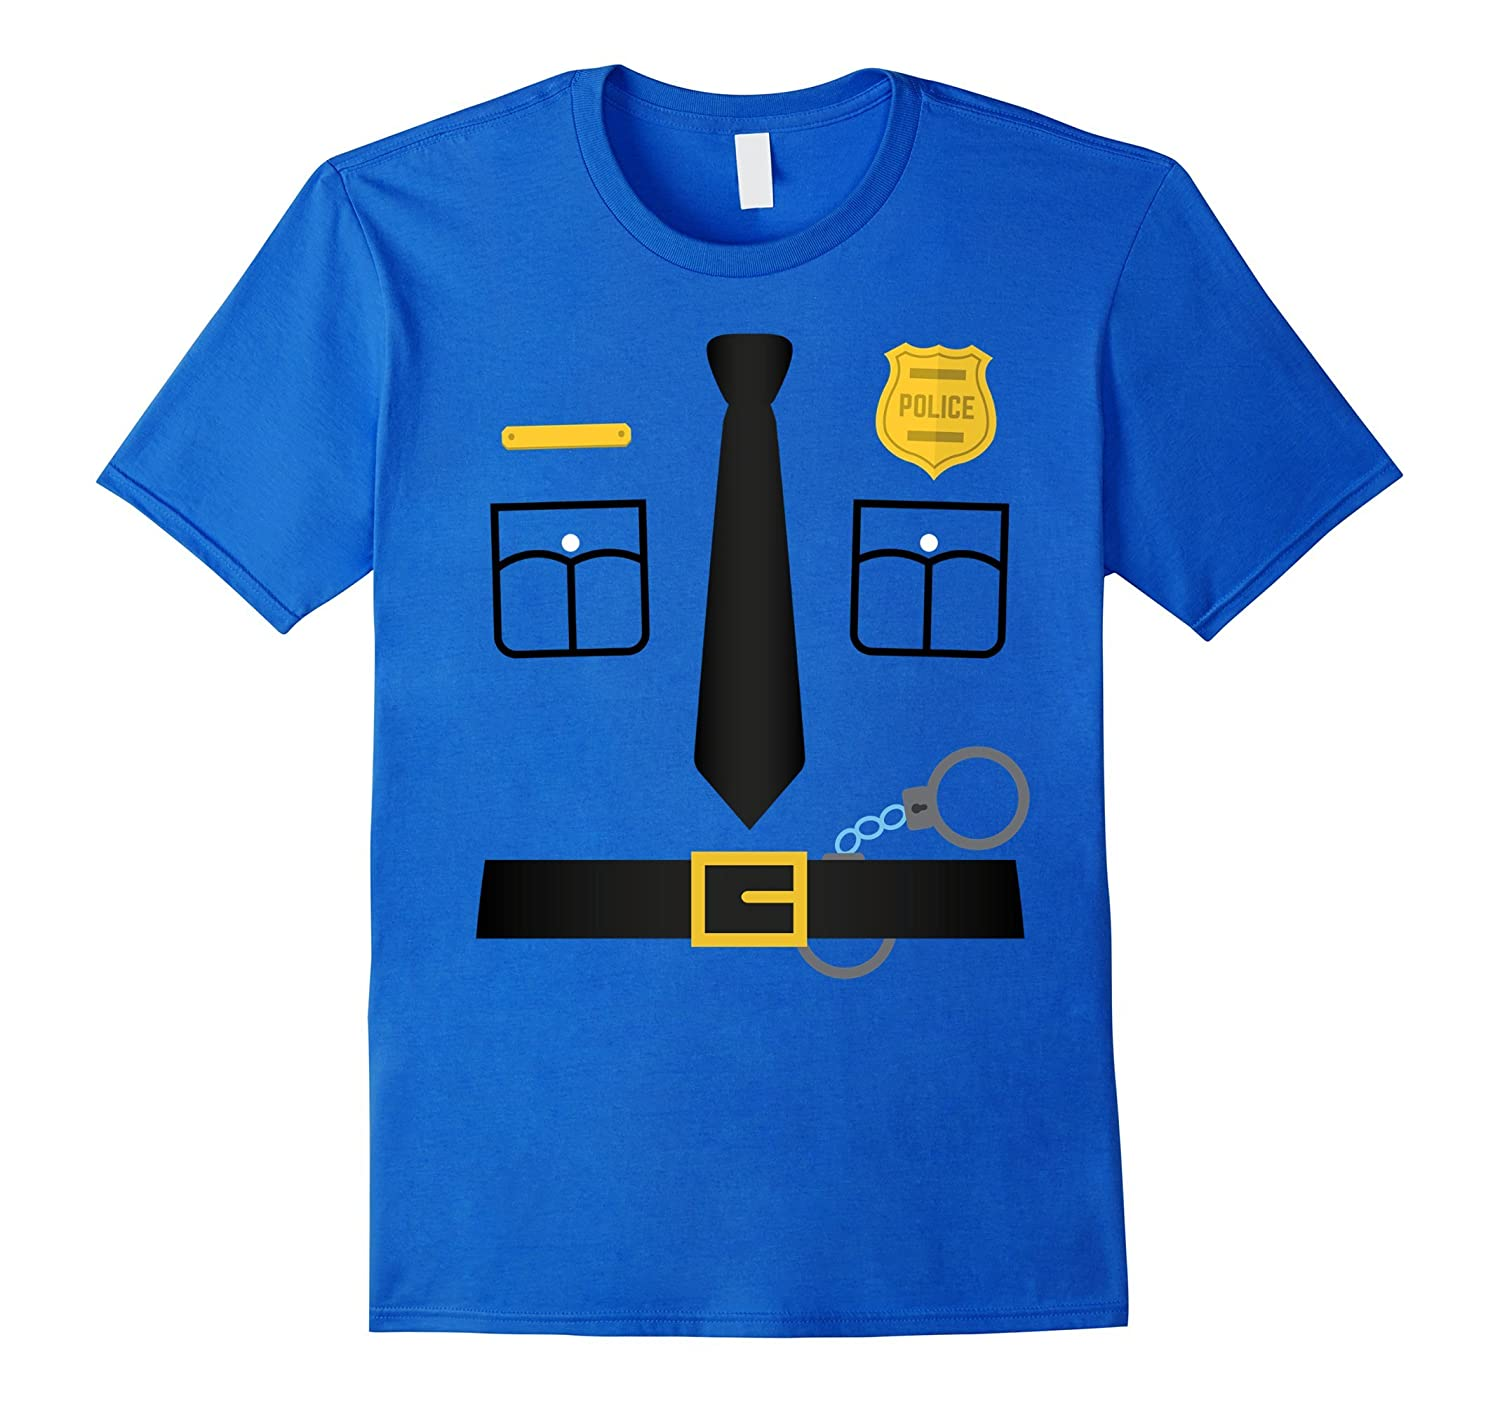 Police Uniform Costume Halloween T-Shirt - Kids to Adult-TD